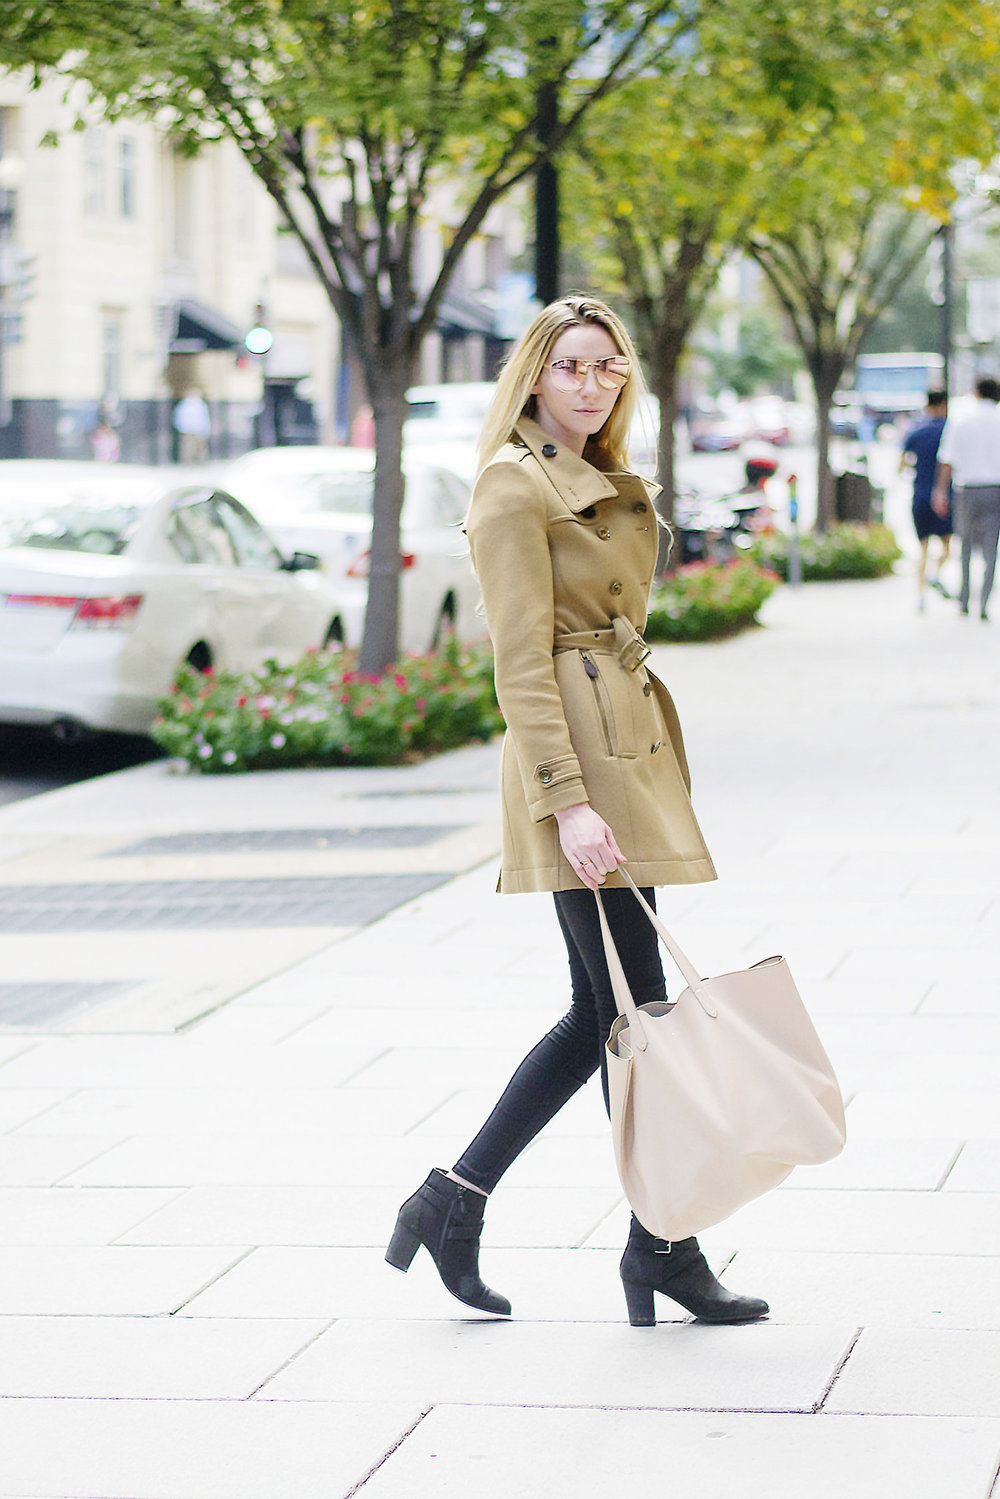 Burberry Daylesmoores Camel Coat (via Chic Now)